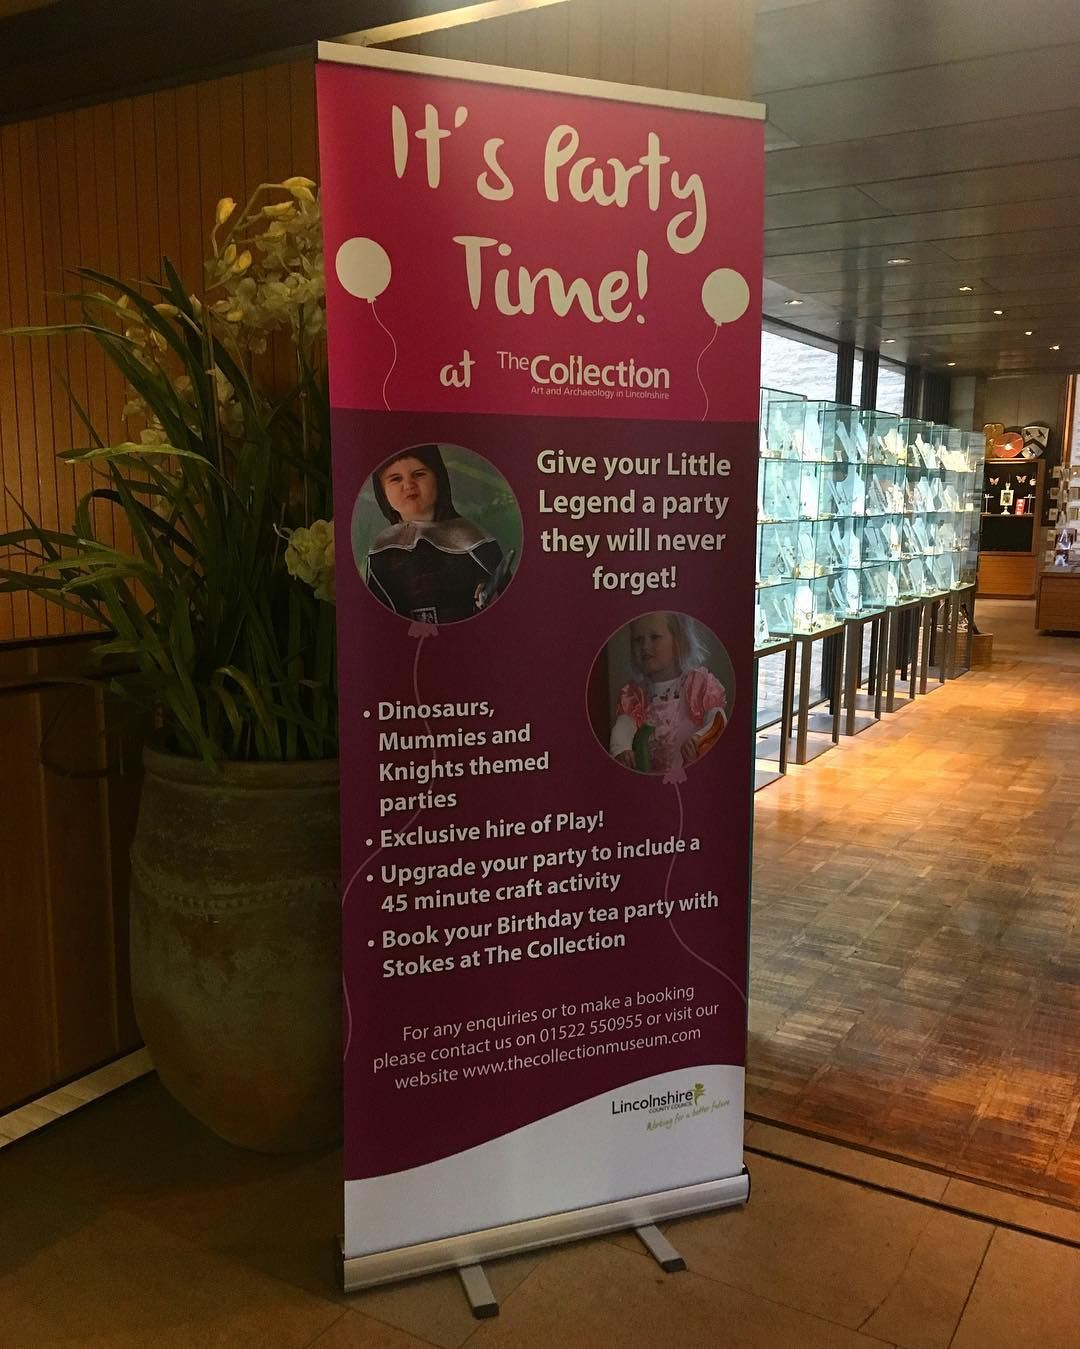 We're now available for birthday parties! The Collection is offering themed birthday parties such as mummies dinosaurs & knights making it a party not to be missed! Visit our website to get more info on how to book your child's birthday party  #lincoln #lincolnshire #party #childrensparty #collectionusher